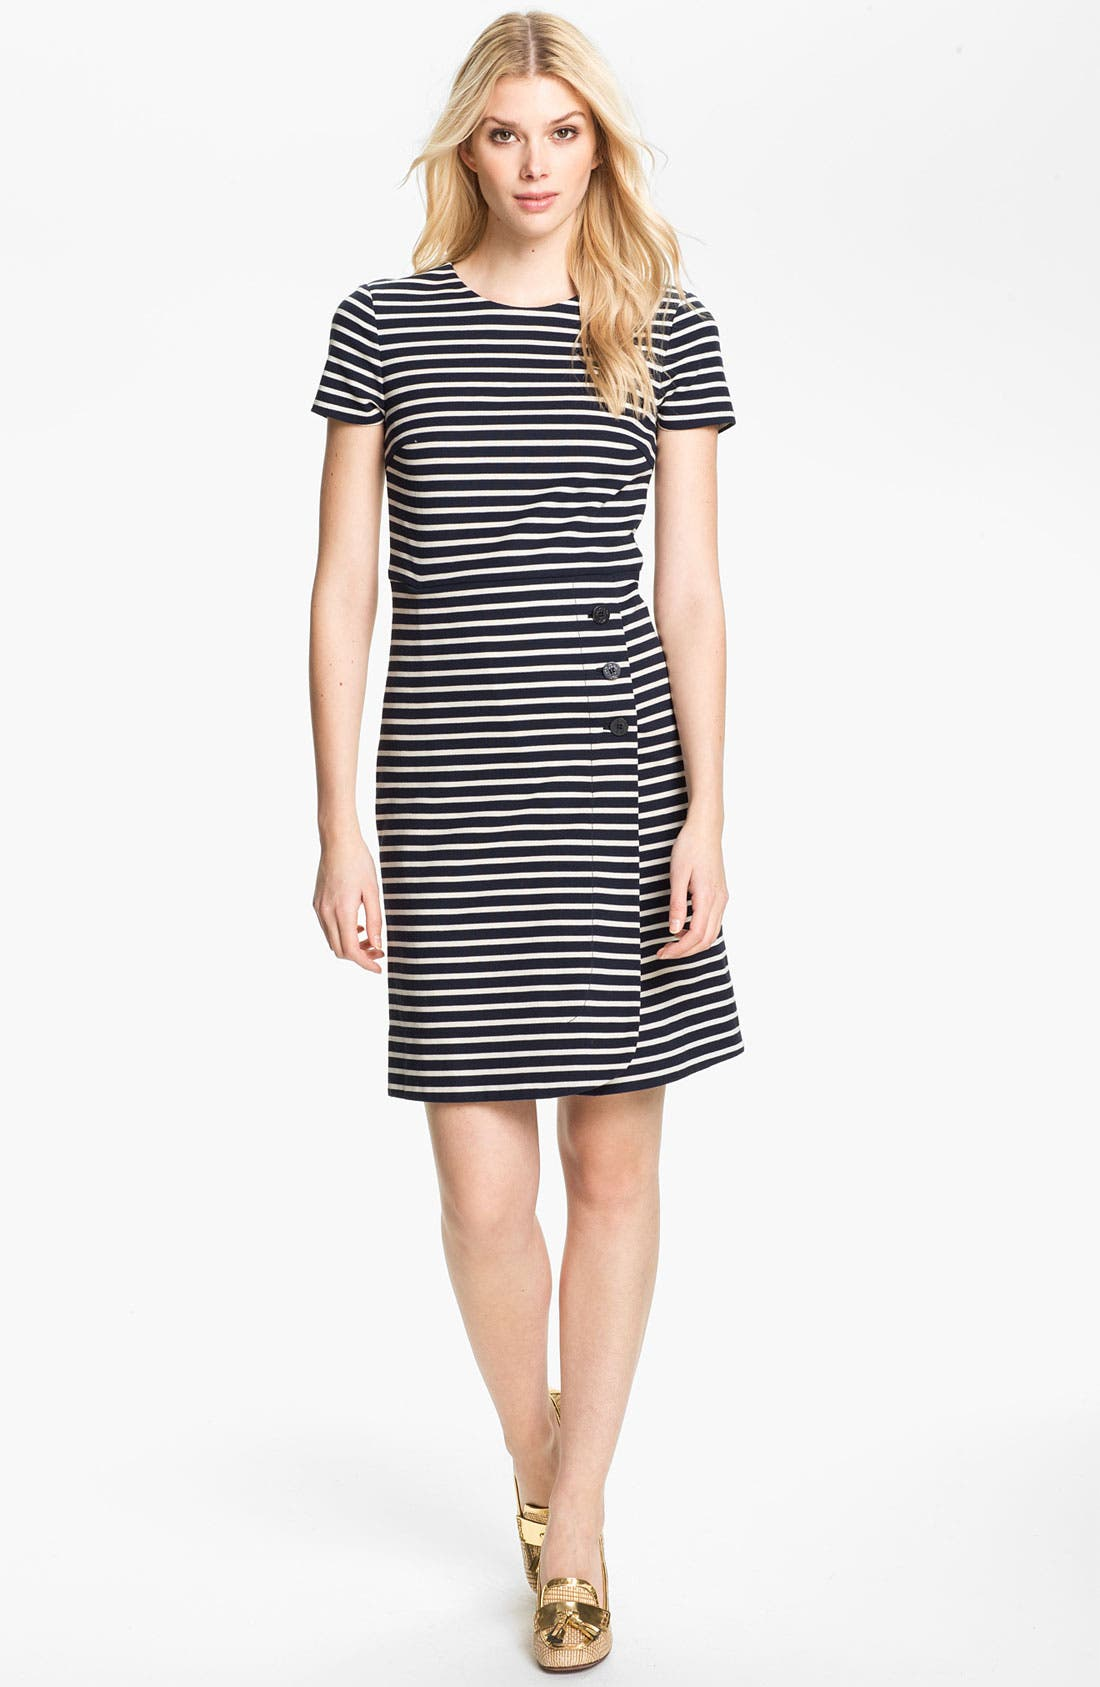 Main Image - Tory Burch 'Kamilla' Cotton Shift Dress